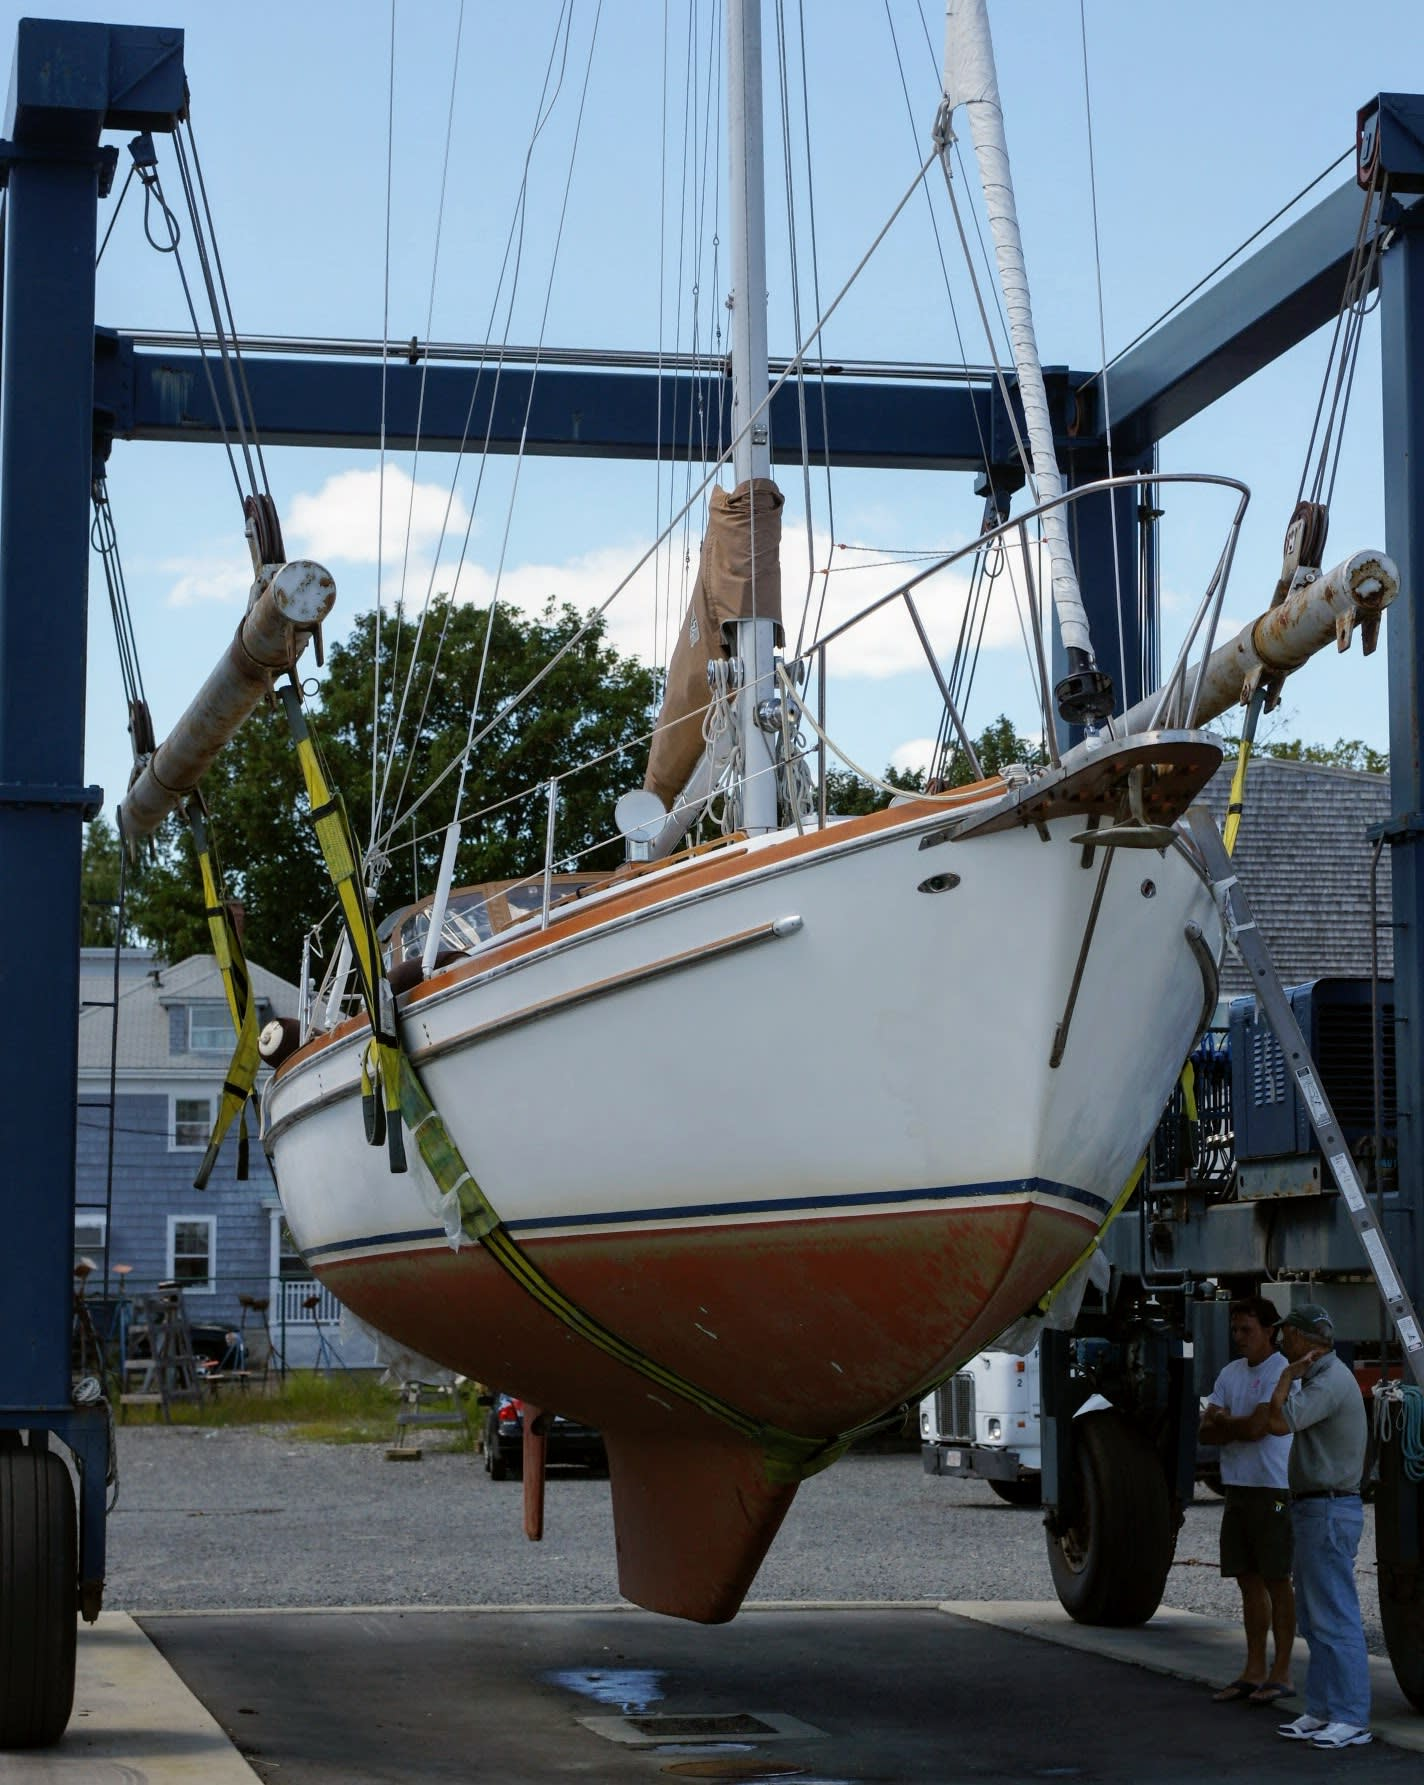 A sailboat out of the water undergoing a survey